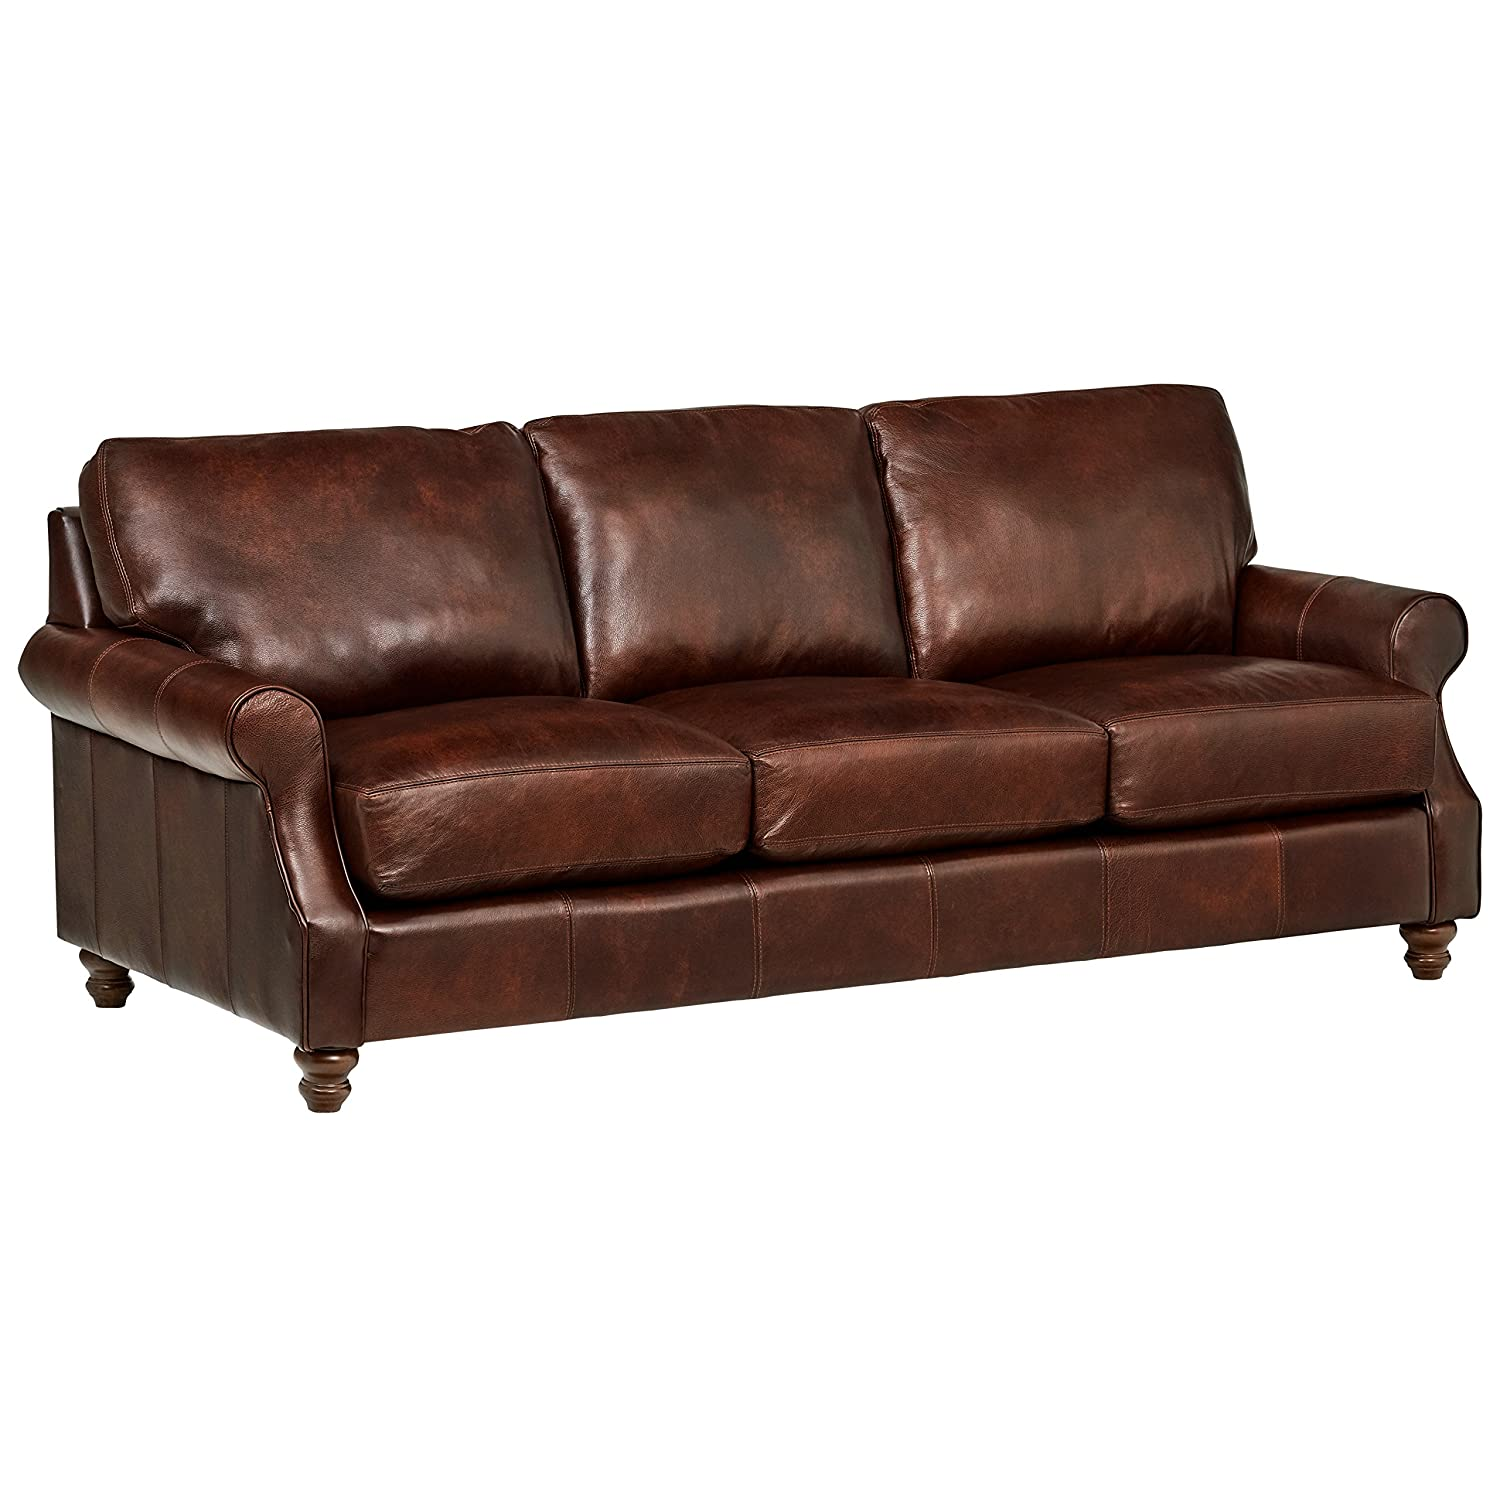 Stone & Beam Charles Classic Oversized Leather Sofa